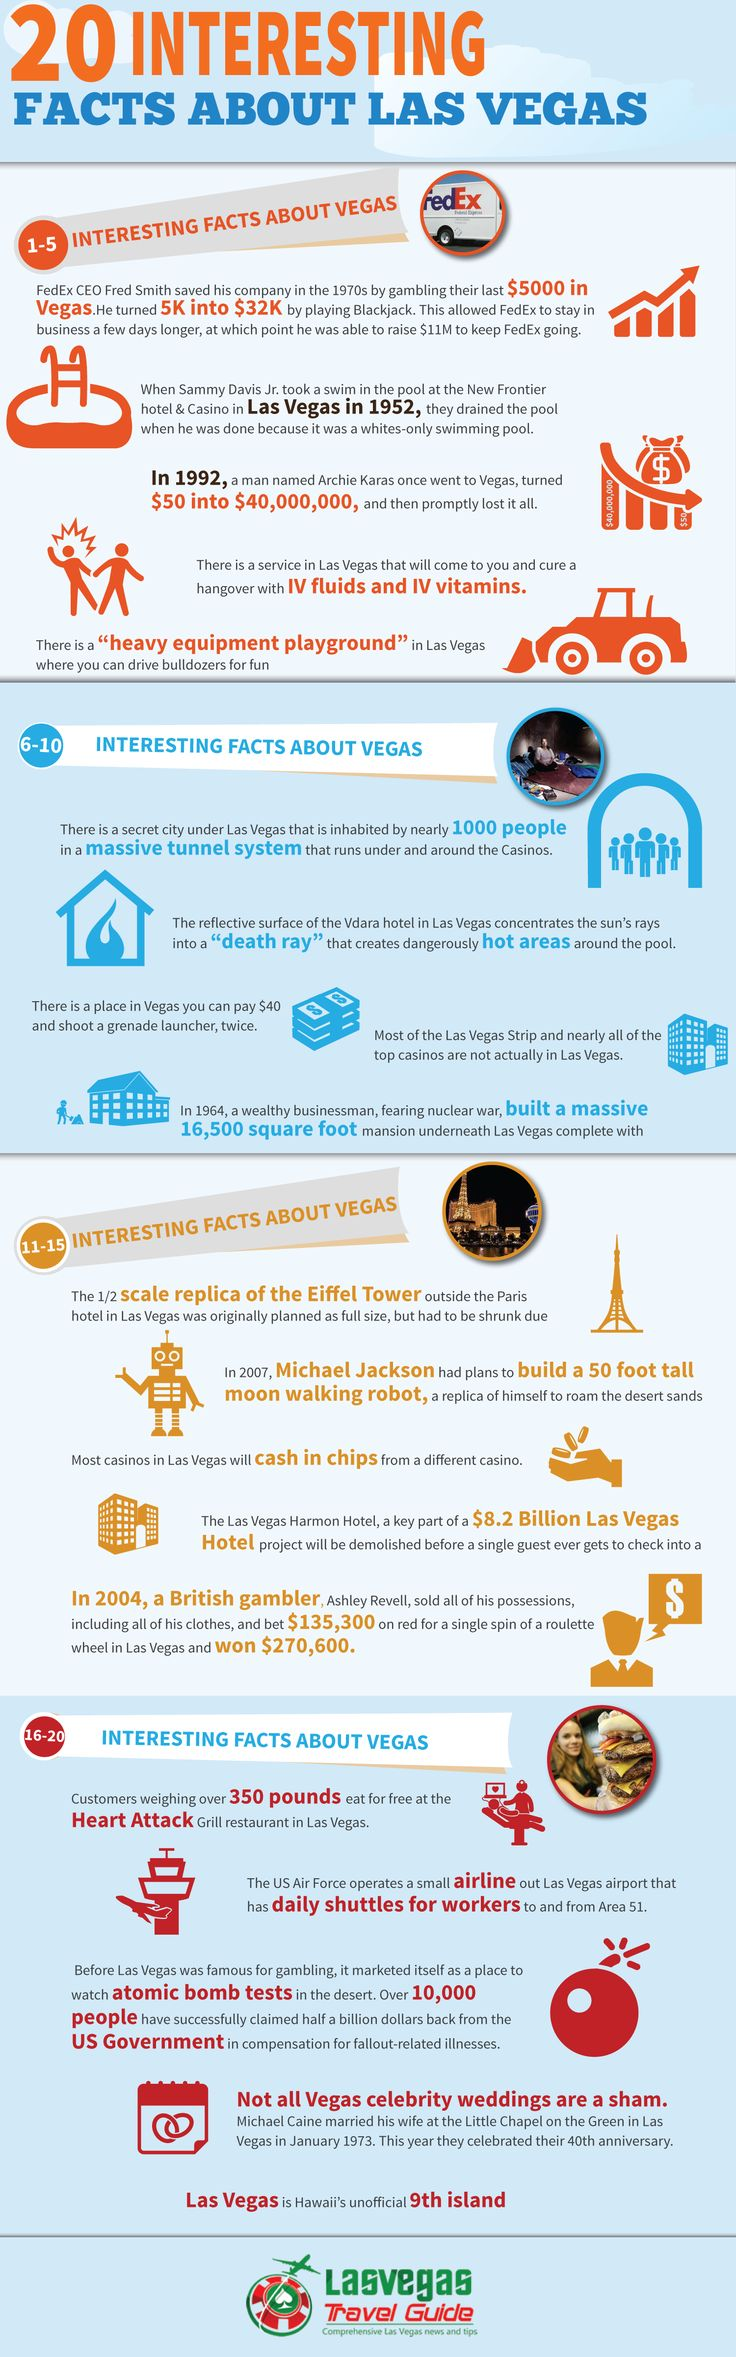 This infographic created by The Las Vegas Travel Guide (http://www.las-vegastravelguide.com) details the 20 most interesting facts about Las Vegas. It is full of fun and humorous facts about the world's wildest and craziest gambling city.  Source: http://www.las-vegastravelguide.com/infographic-20-interesting-facts-las-vegas/ #travelinfographic